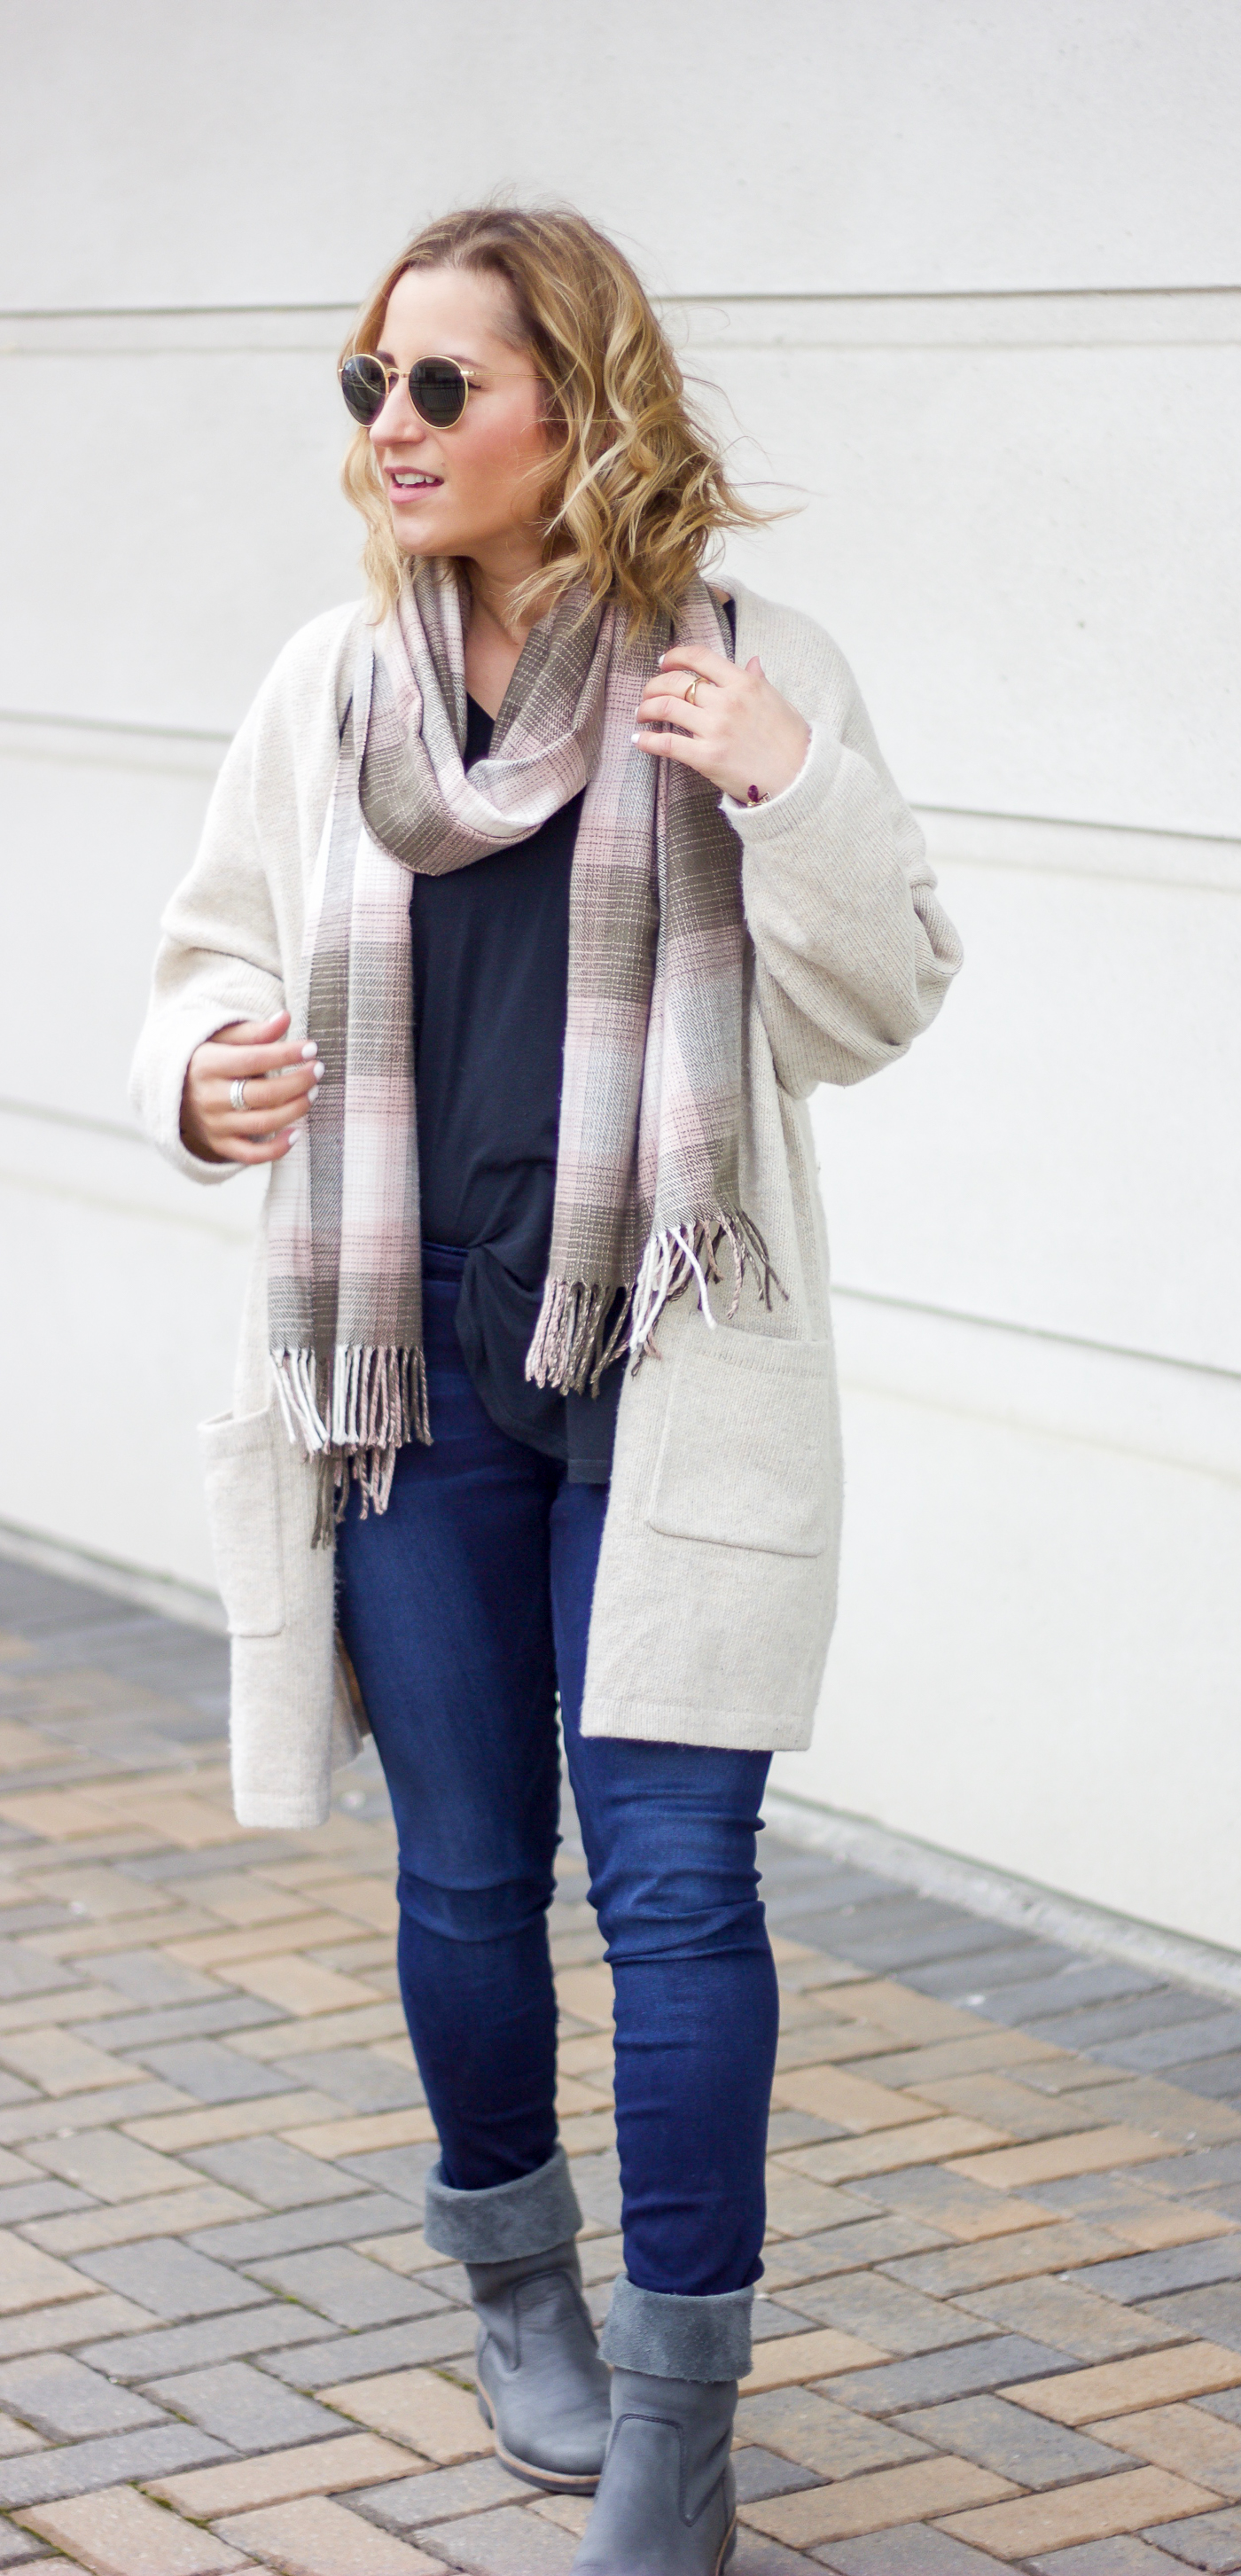 Canadian fashion blogger is wearing a neutral cardigan with pockets from Gap with an oversized tee, plaid scarf and jeans